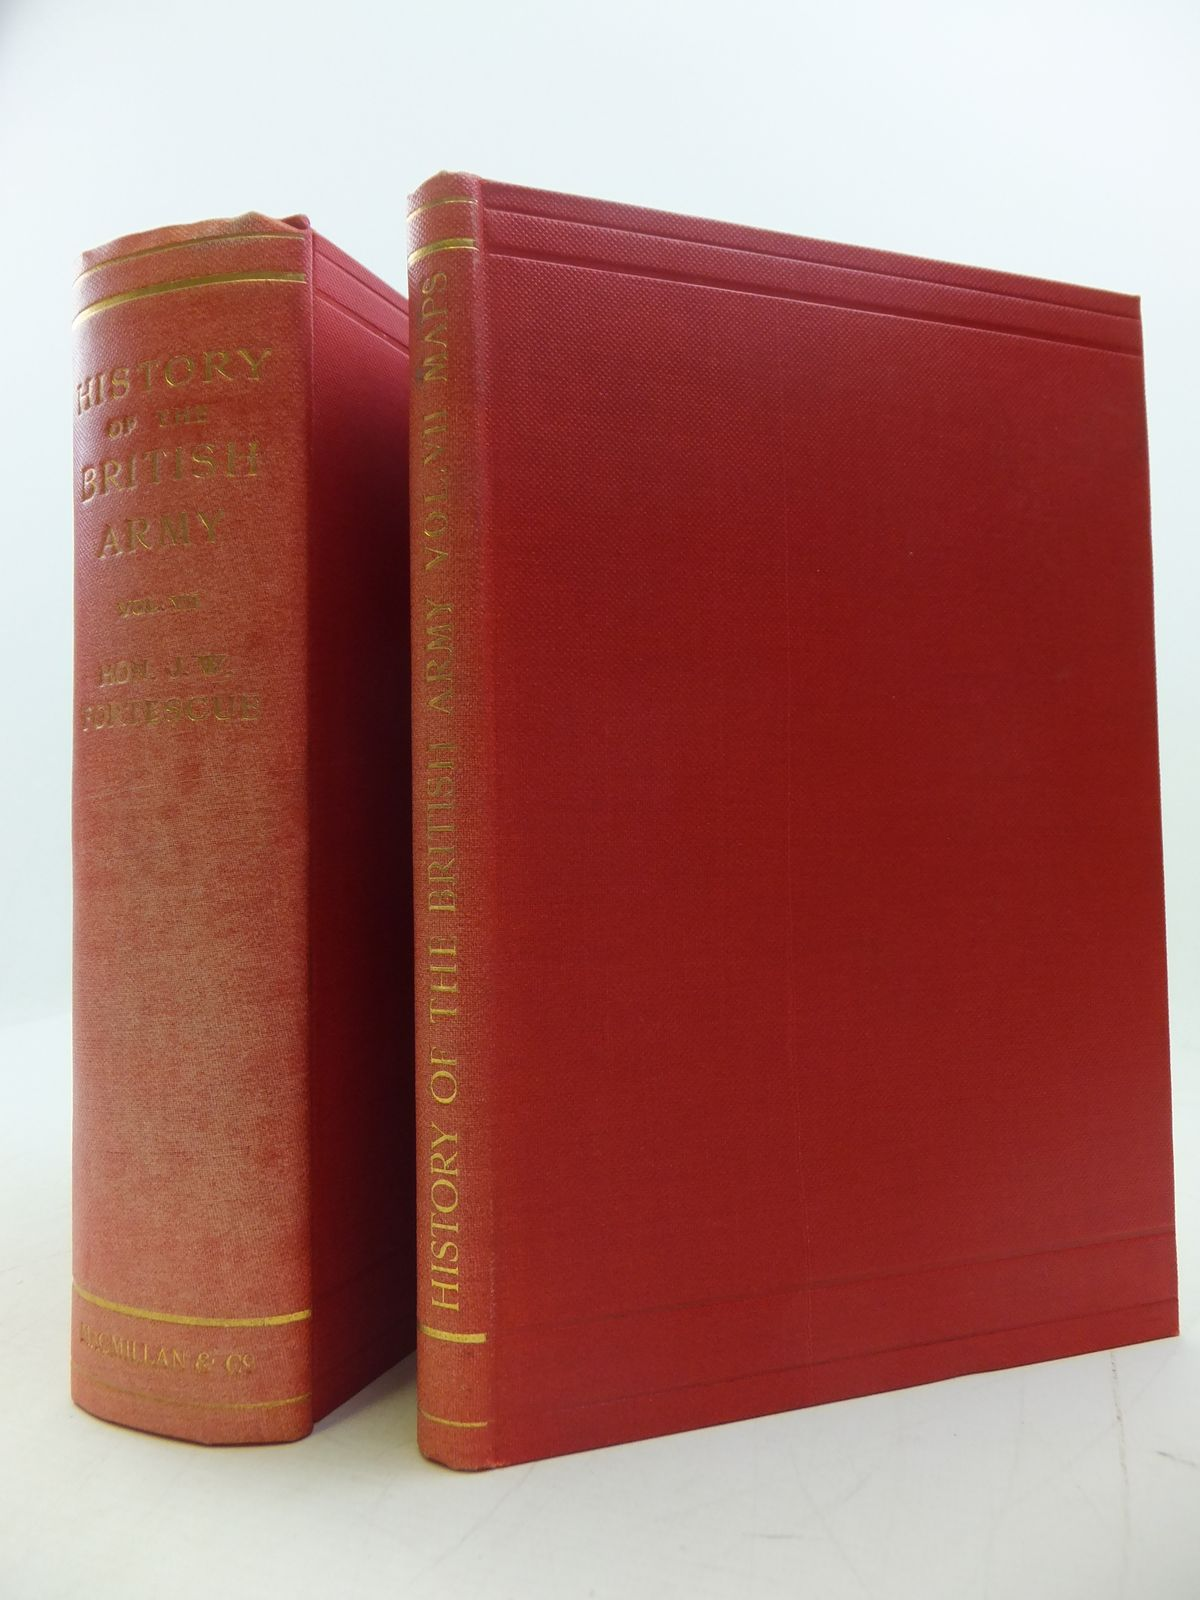 Photo of A HISTORY OF THE BRITISH ARMY VOLUME VII 1809-1810 AND MAPS